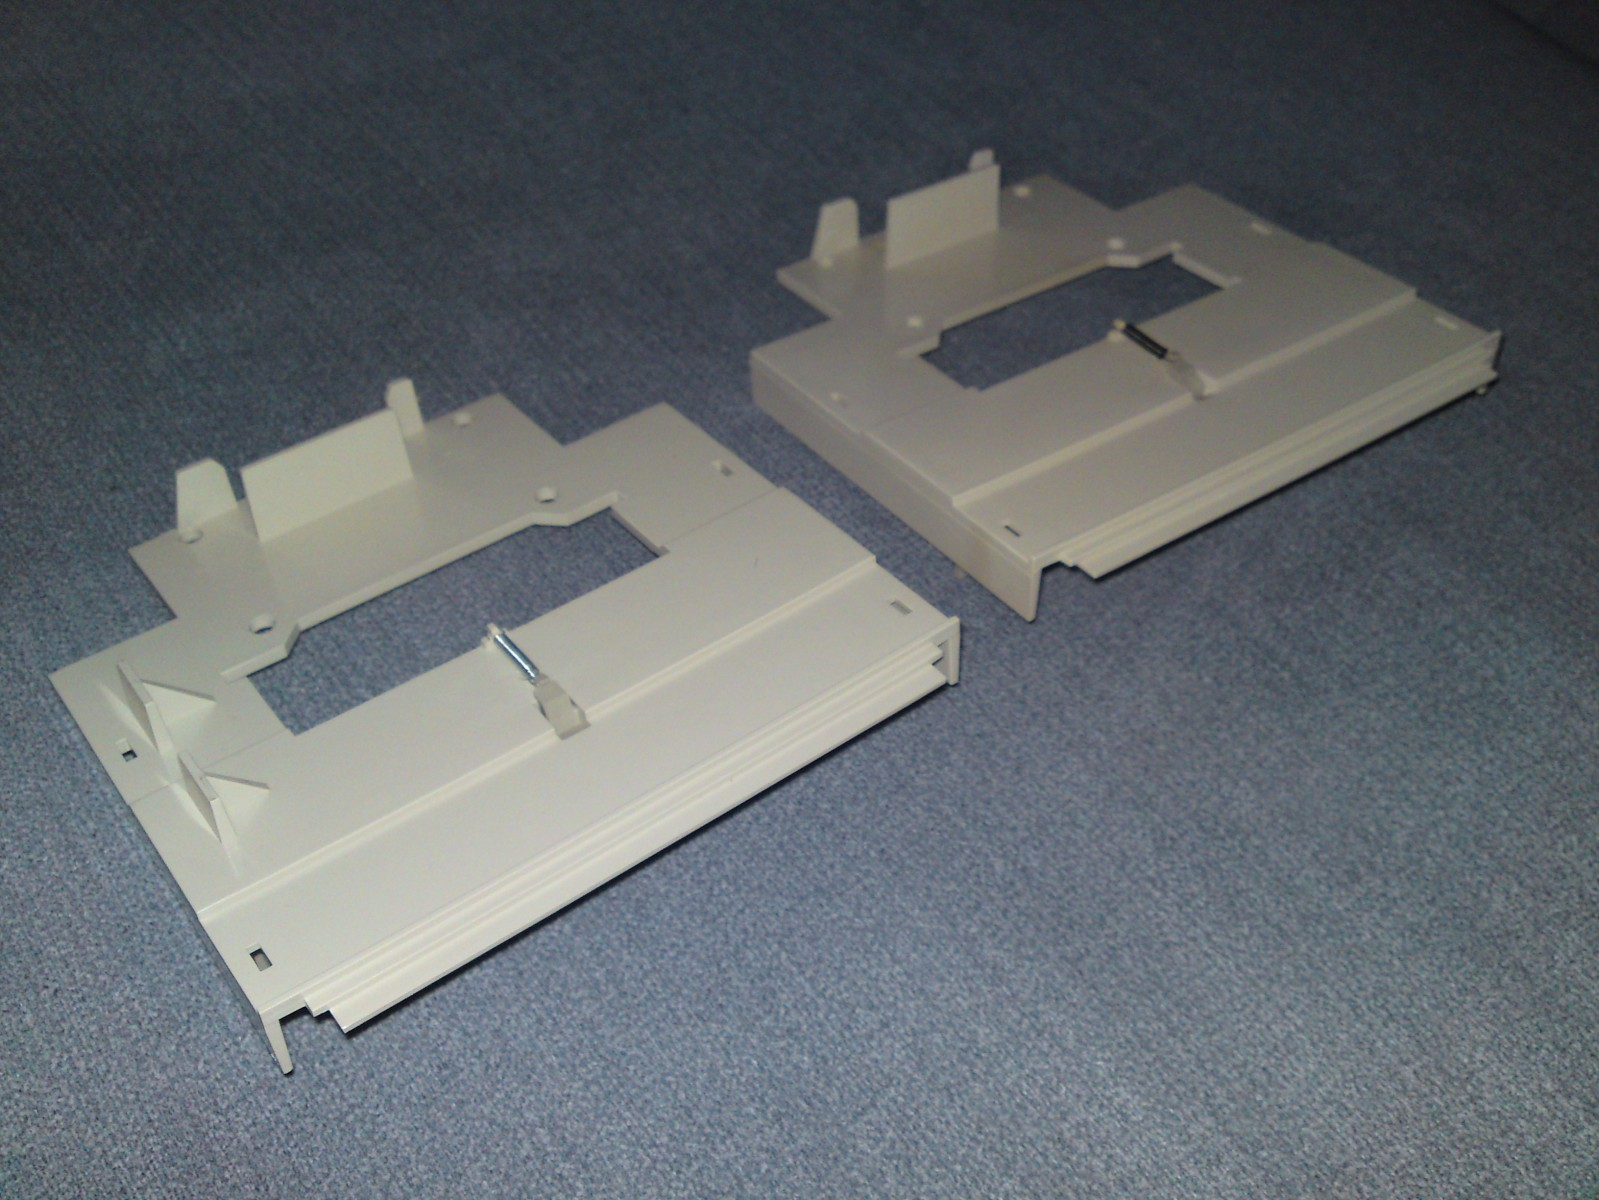 TI-99/4A GROM port trap doors (side view)